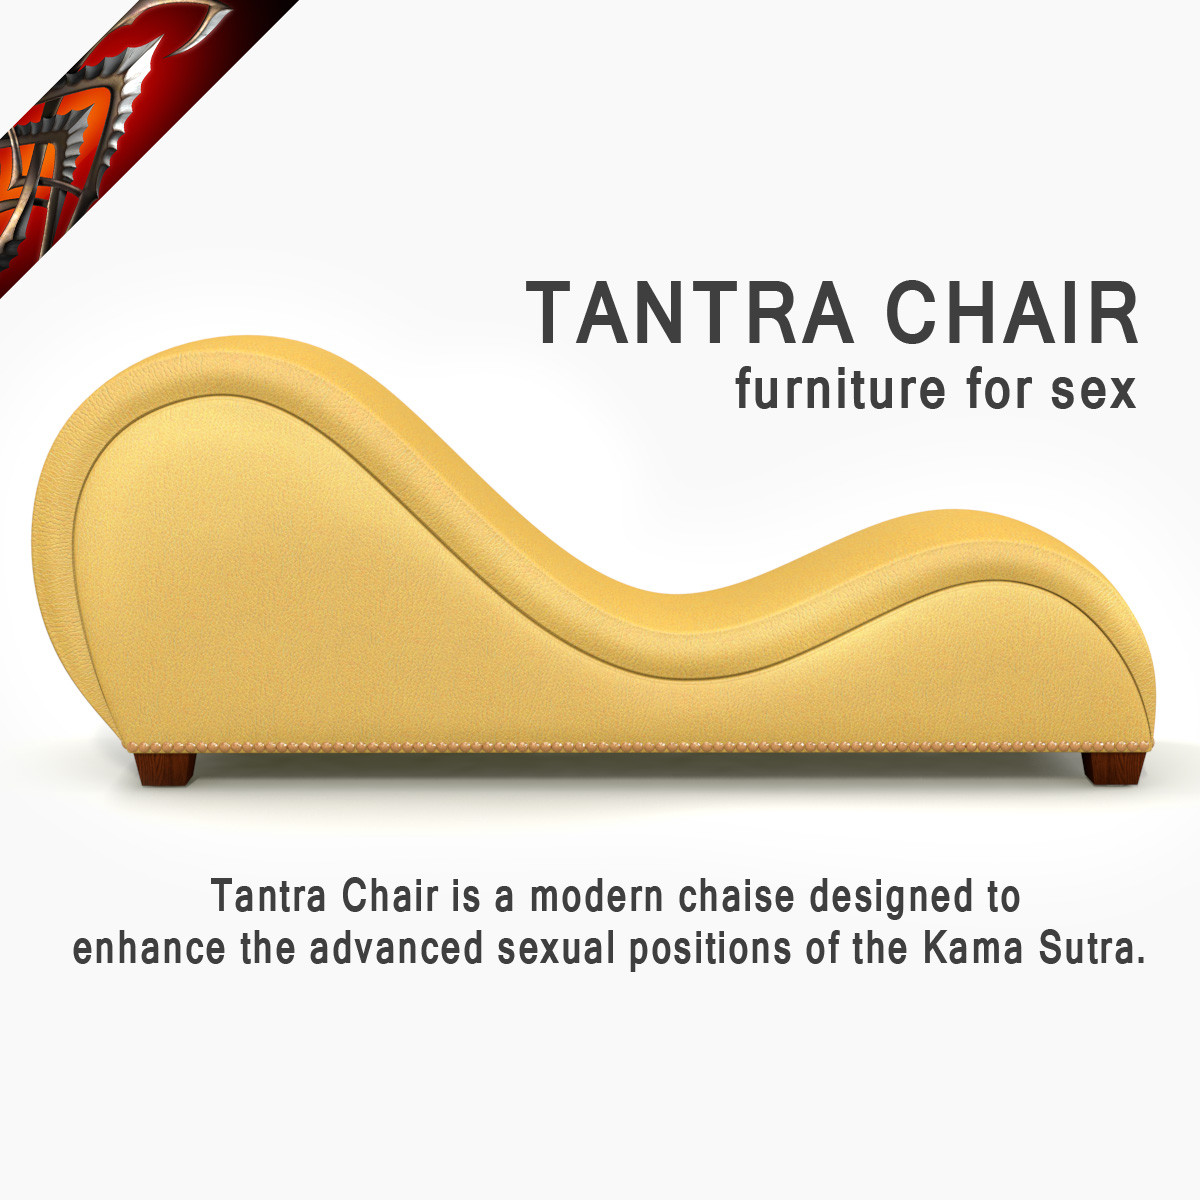 Tantra chair sexual positions - Furniture For Sex